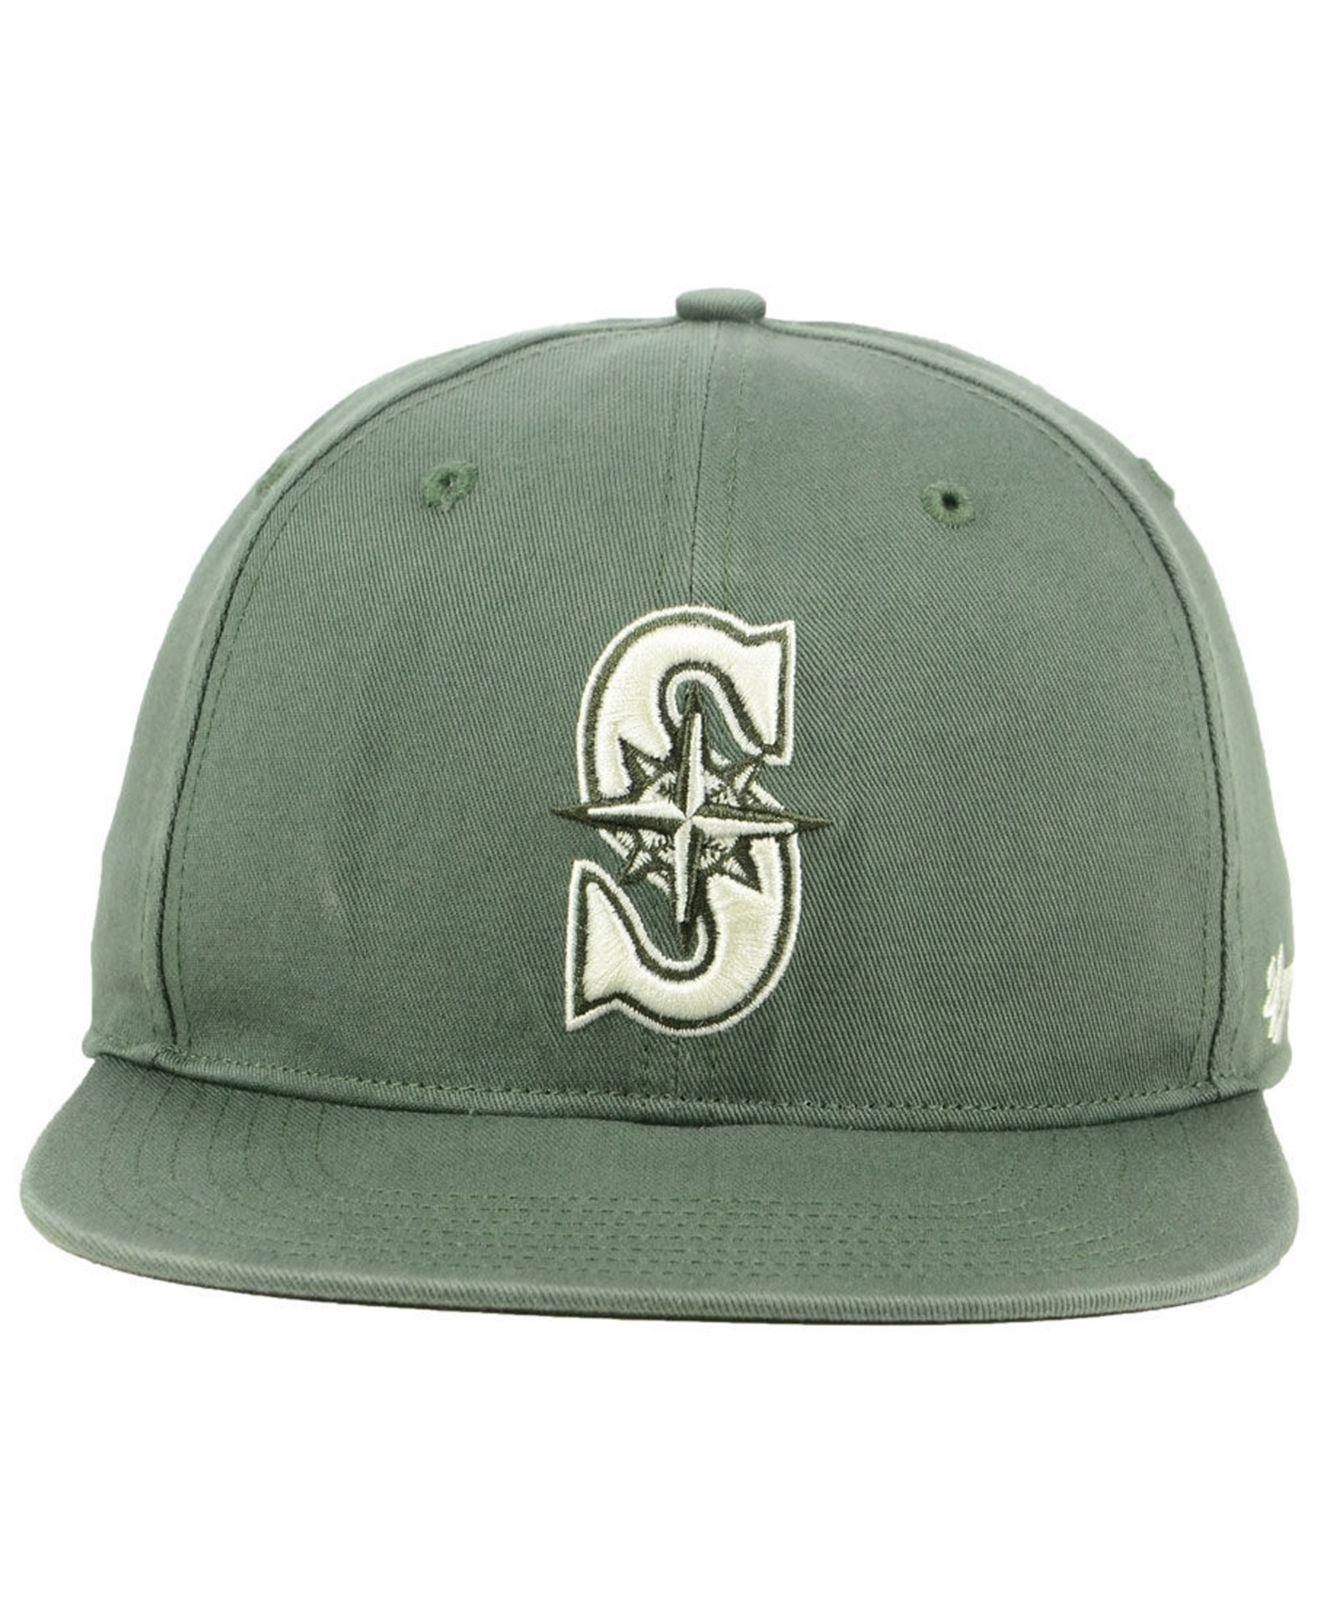 online retailer 3c61e 78ad1 Lyst - 47 Brand Seattle Mariners Moss Snapback Cap in Green for Men